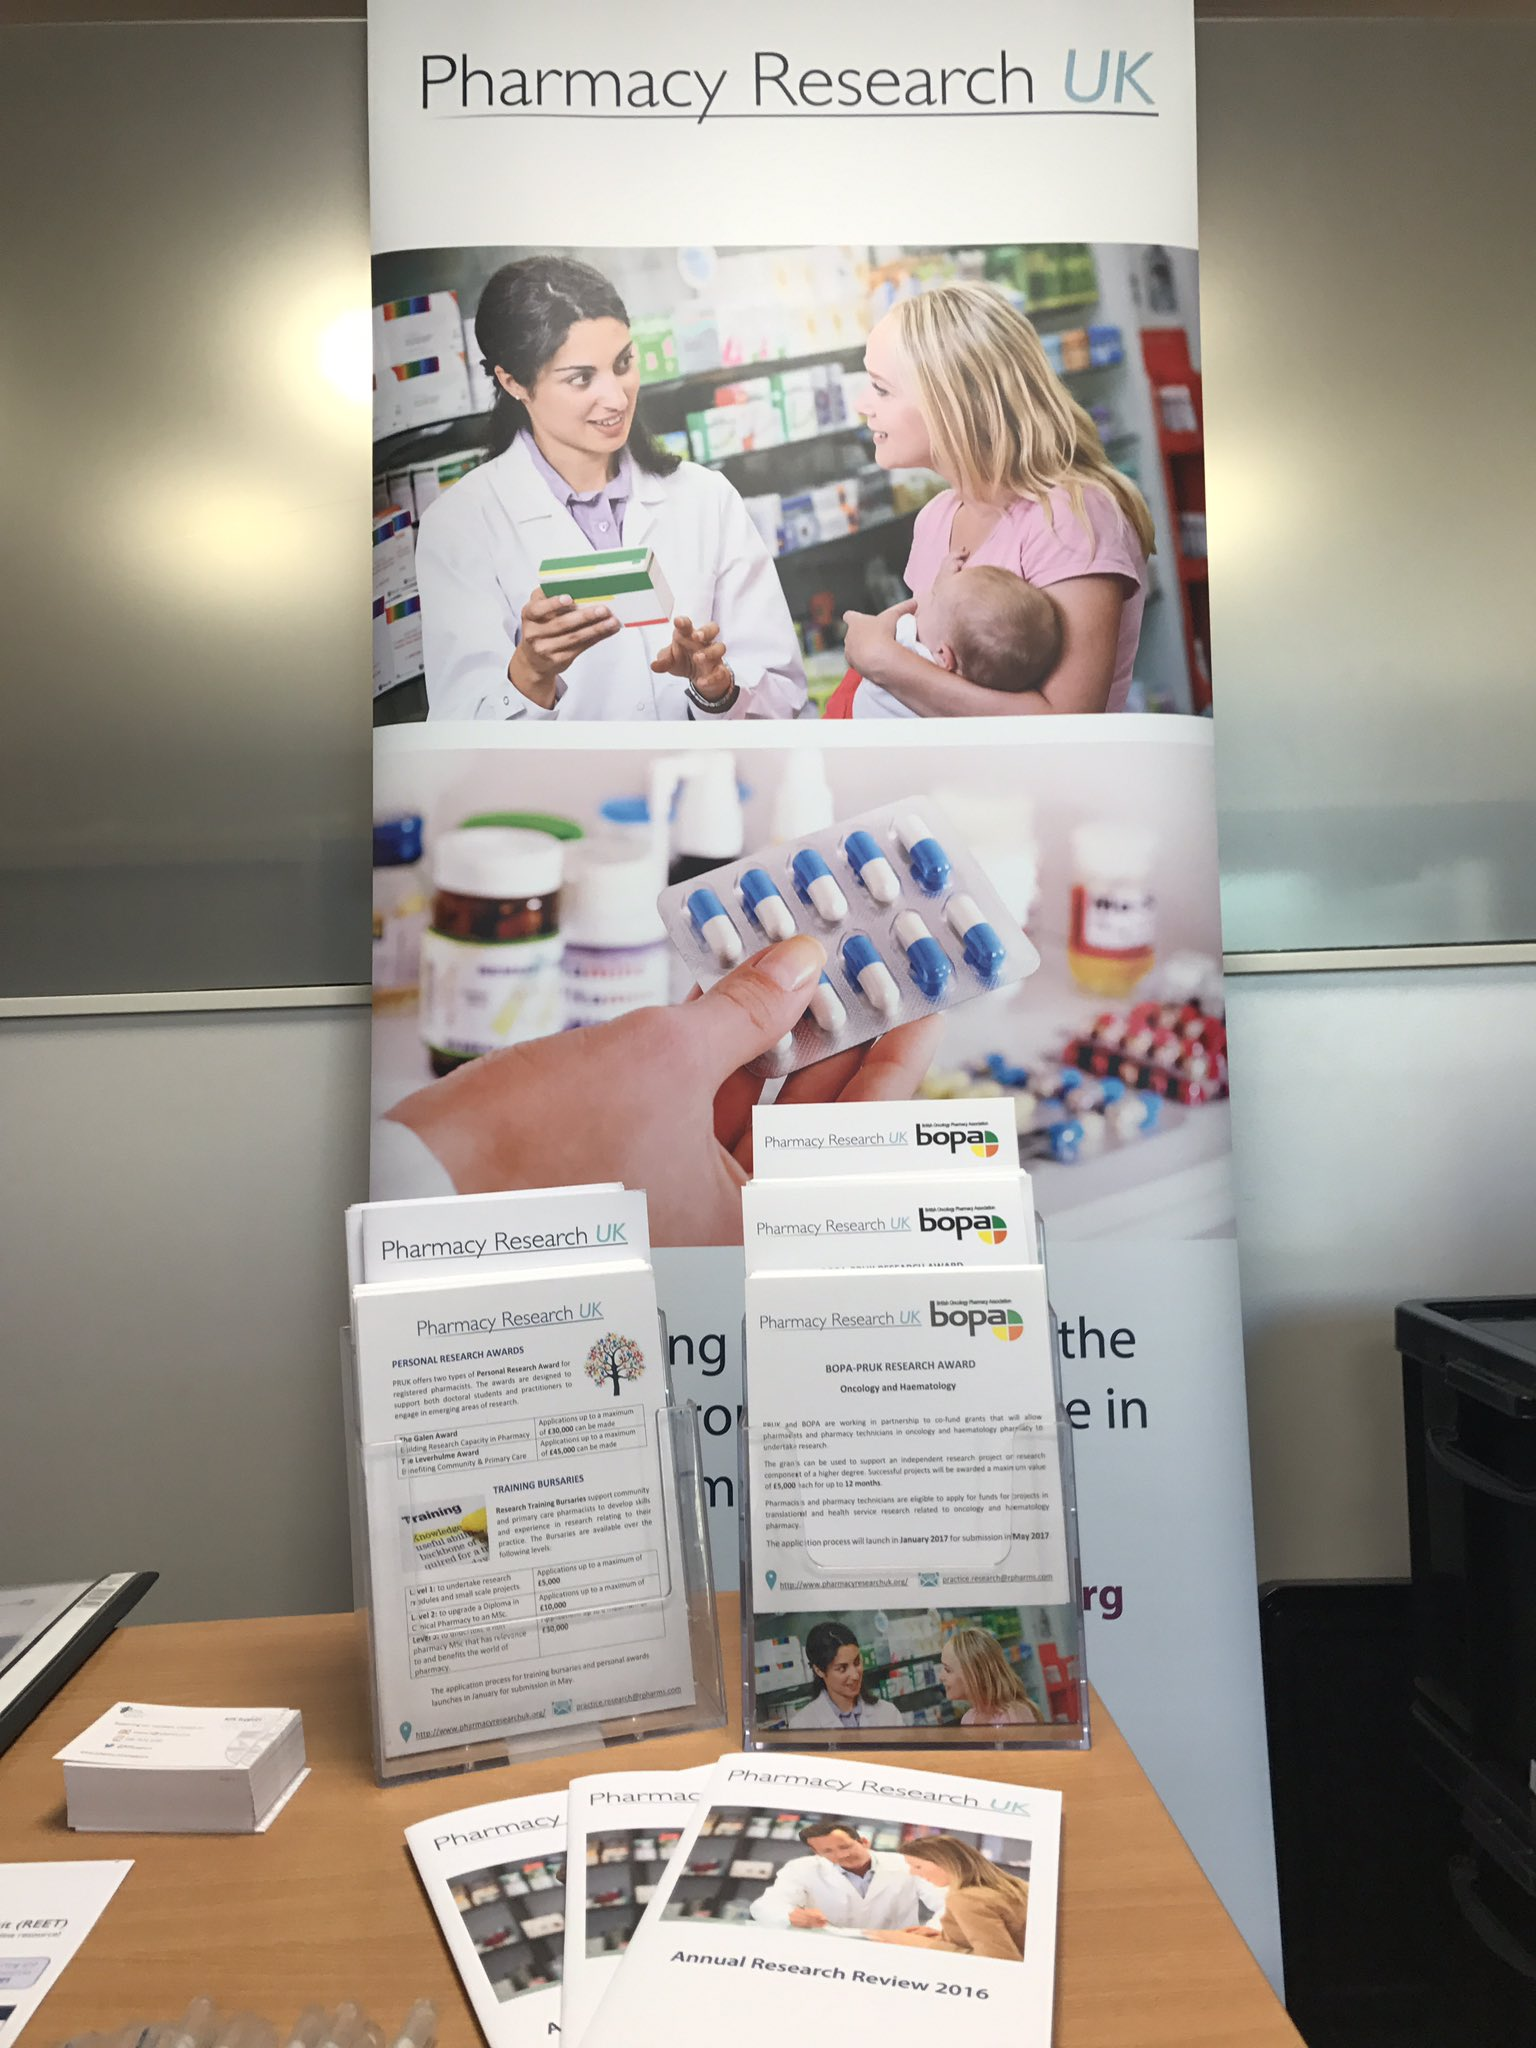 #hsrpp2017 @PharmResUK Stand all set up and ready to go. Pop by & hear about #research #funding for #pharmacy @hsrpp2017 https://t.co/OHjFQQaaiT